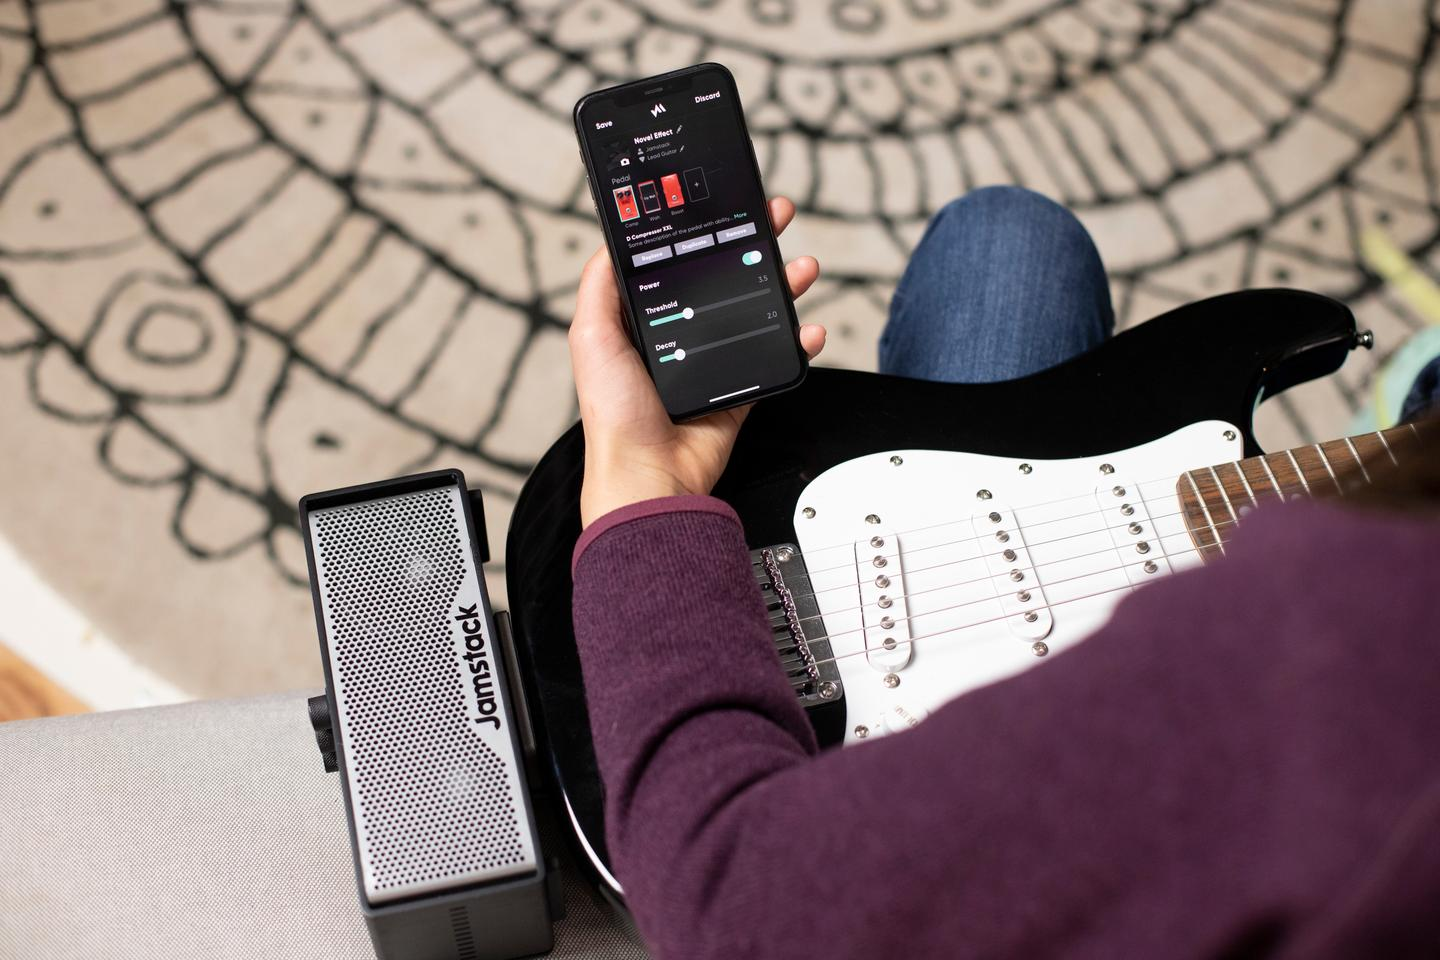 The Jamstack 2 will work on its own, but more features and functionality can be added using the companion mobile app